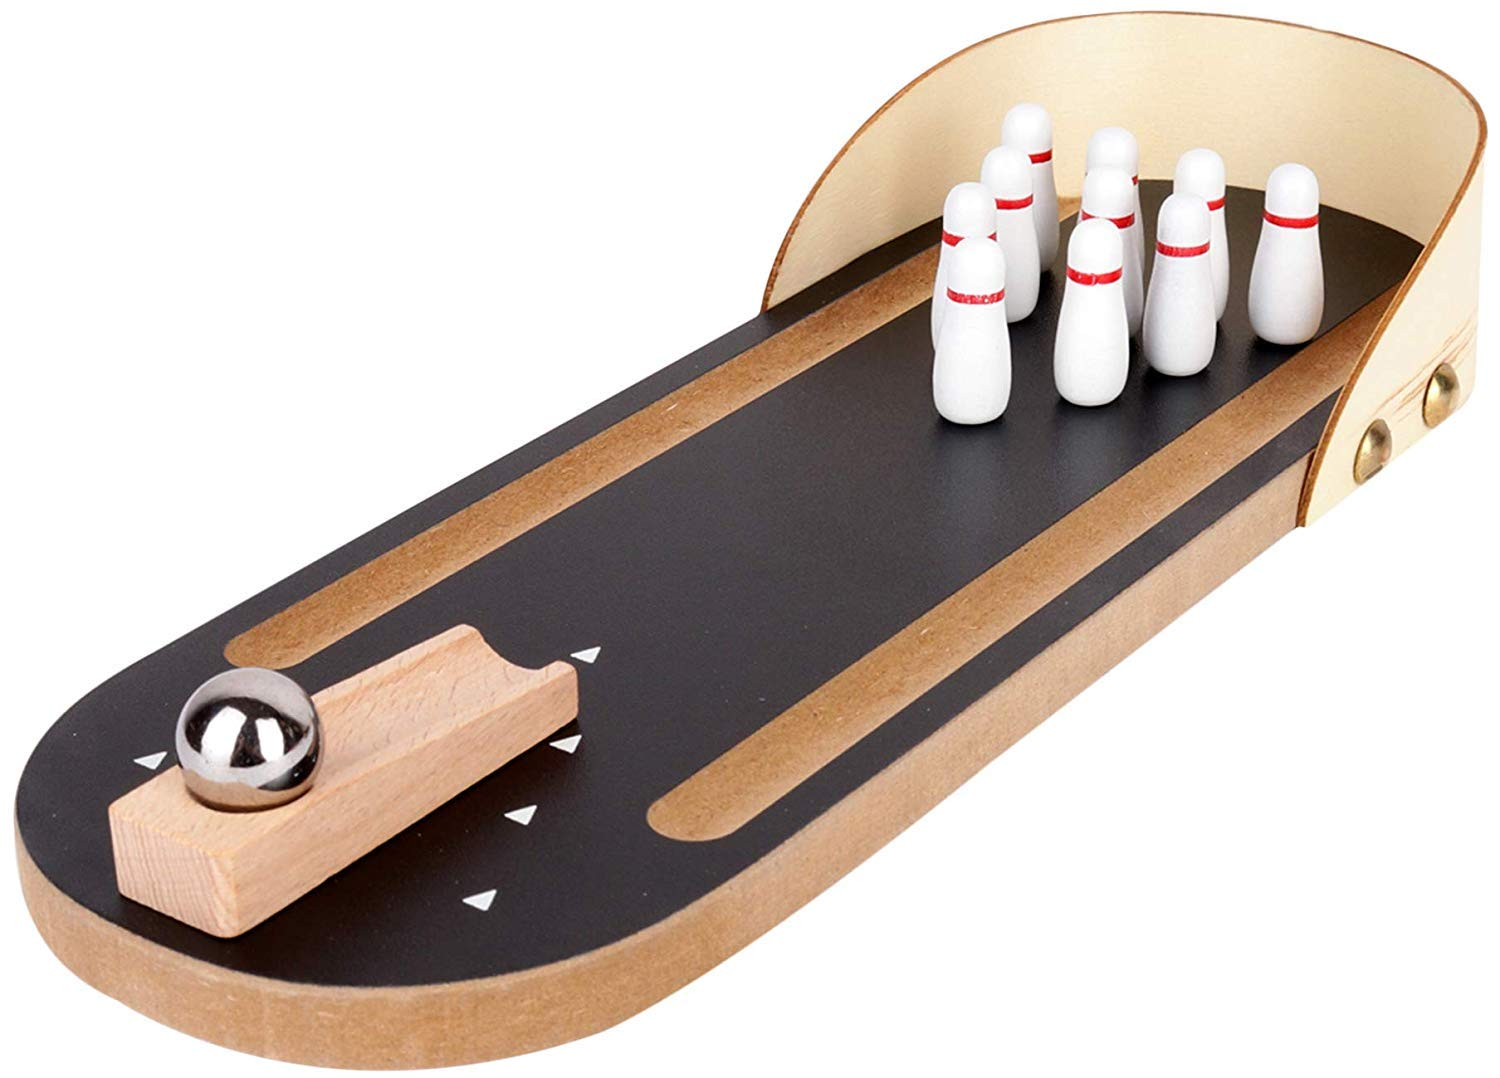 Webby Wooden Mini Bowling Table Top Toy Game Set For Kids And Adults